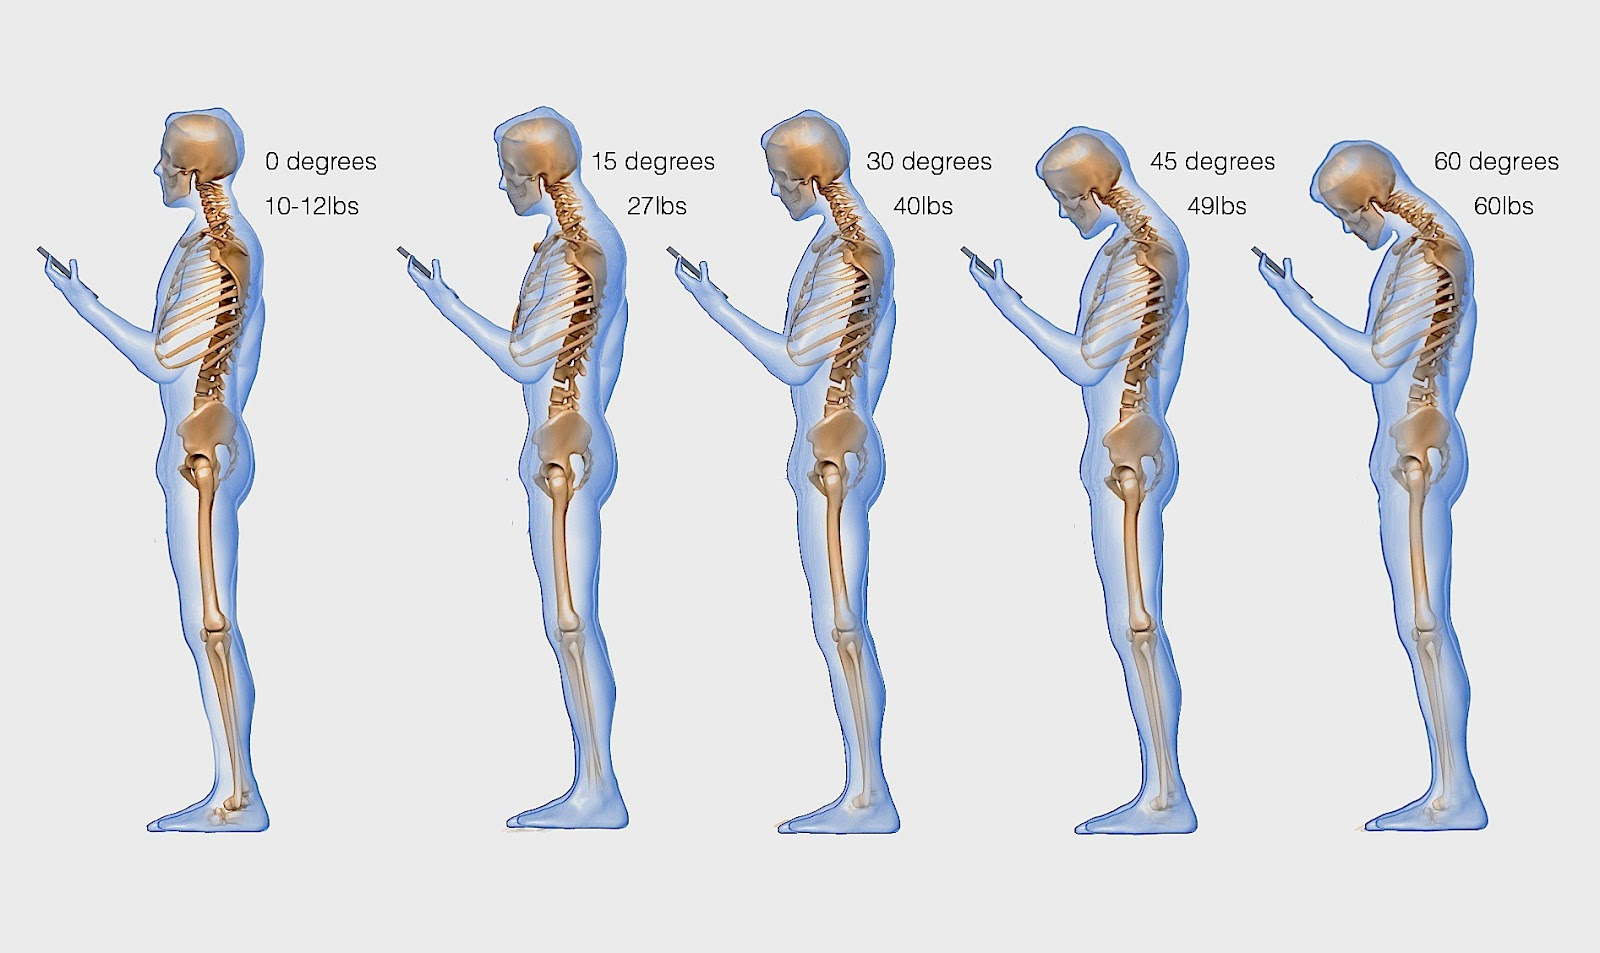 spine-phone-looking-down-neck-texting1.jpg